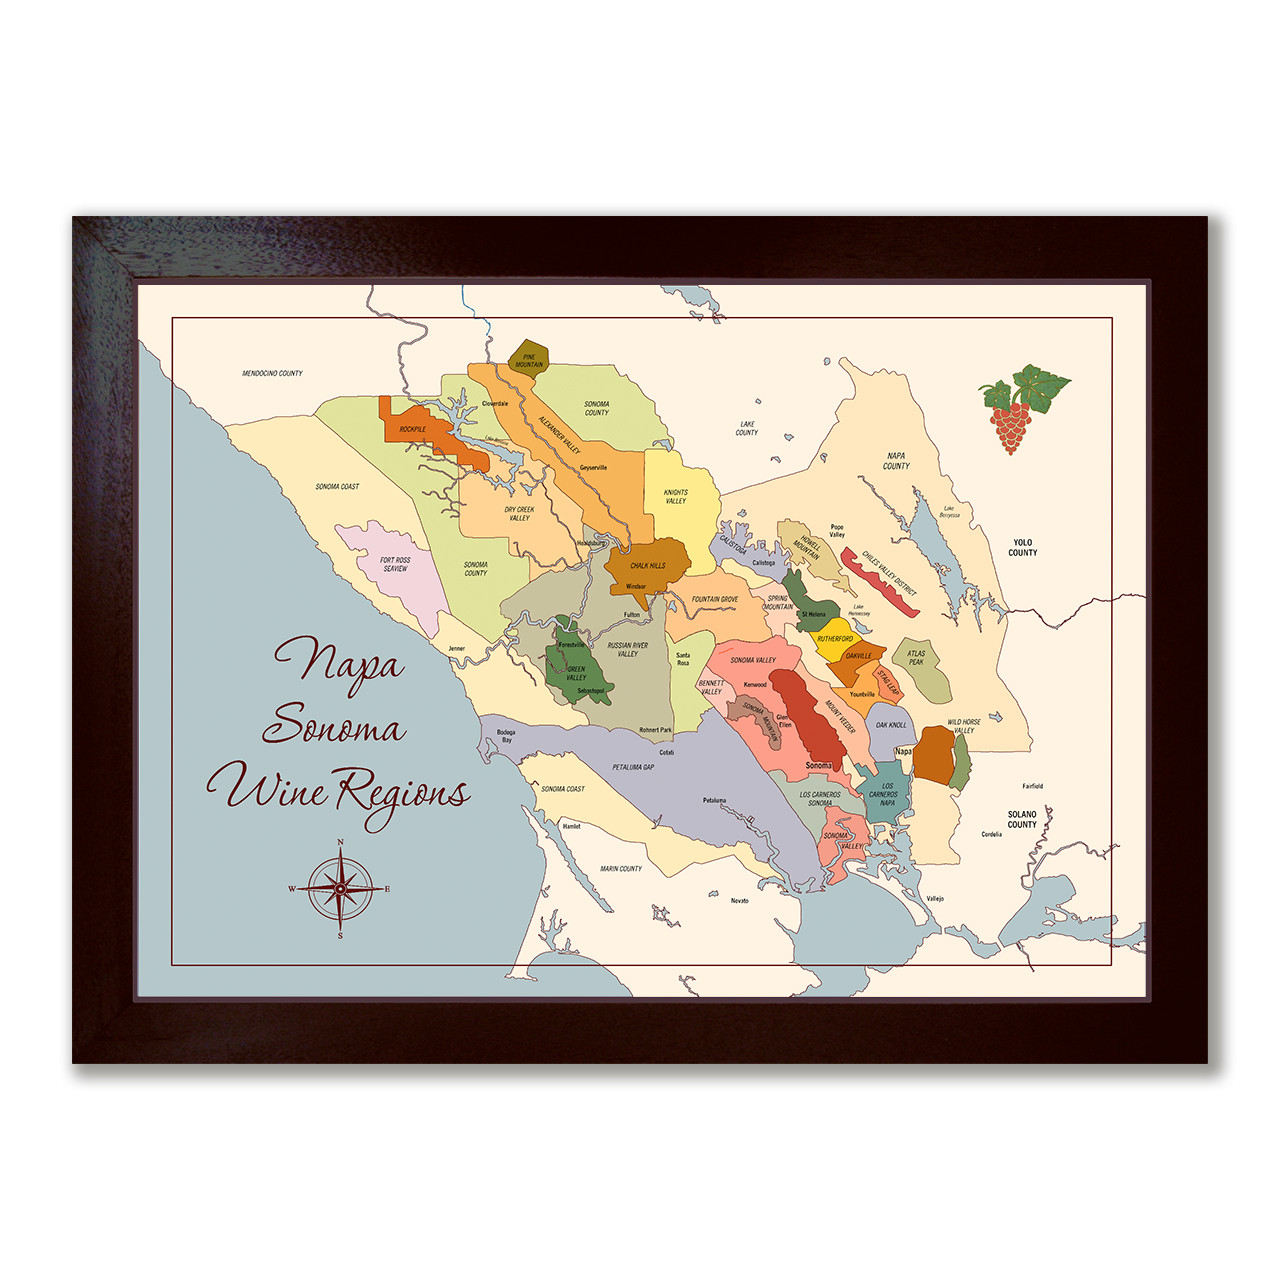 Napa Sonoma Wine Regions canvas framed